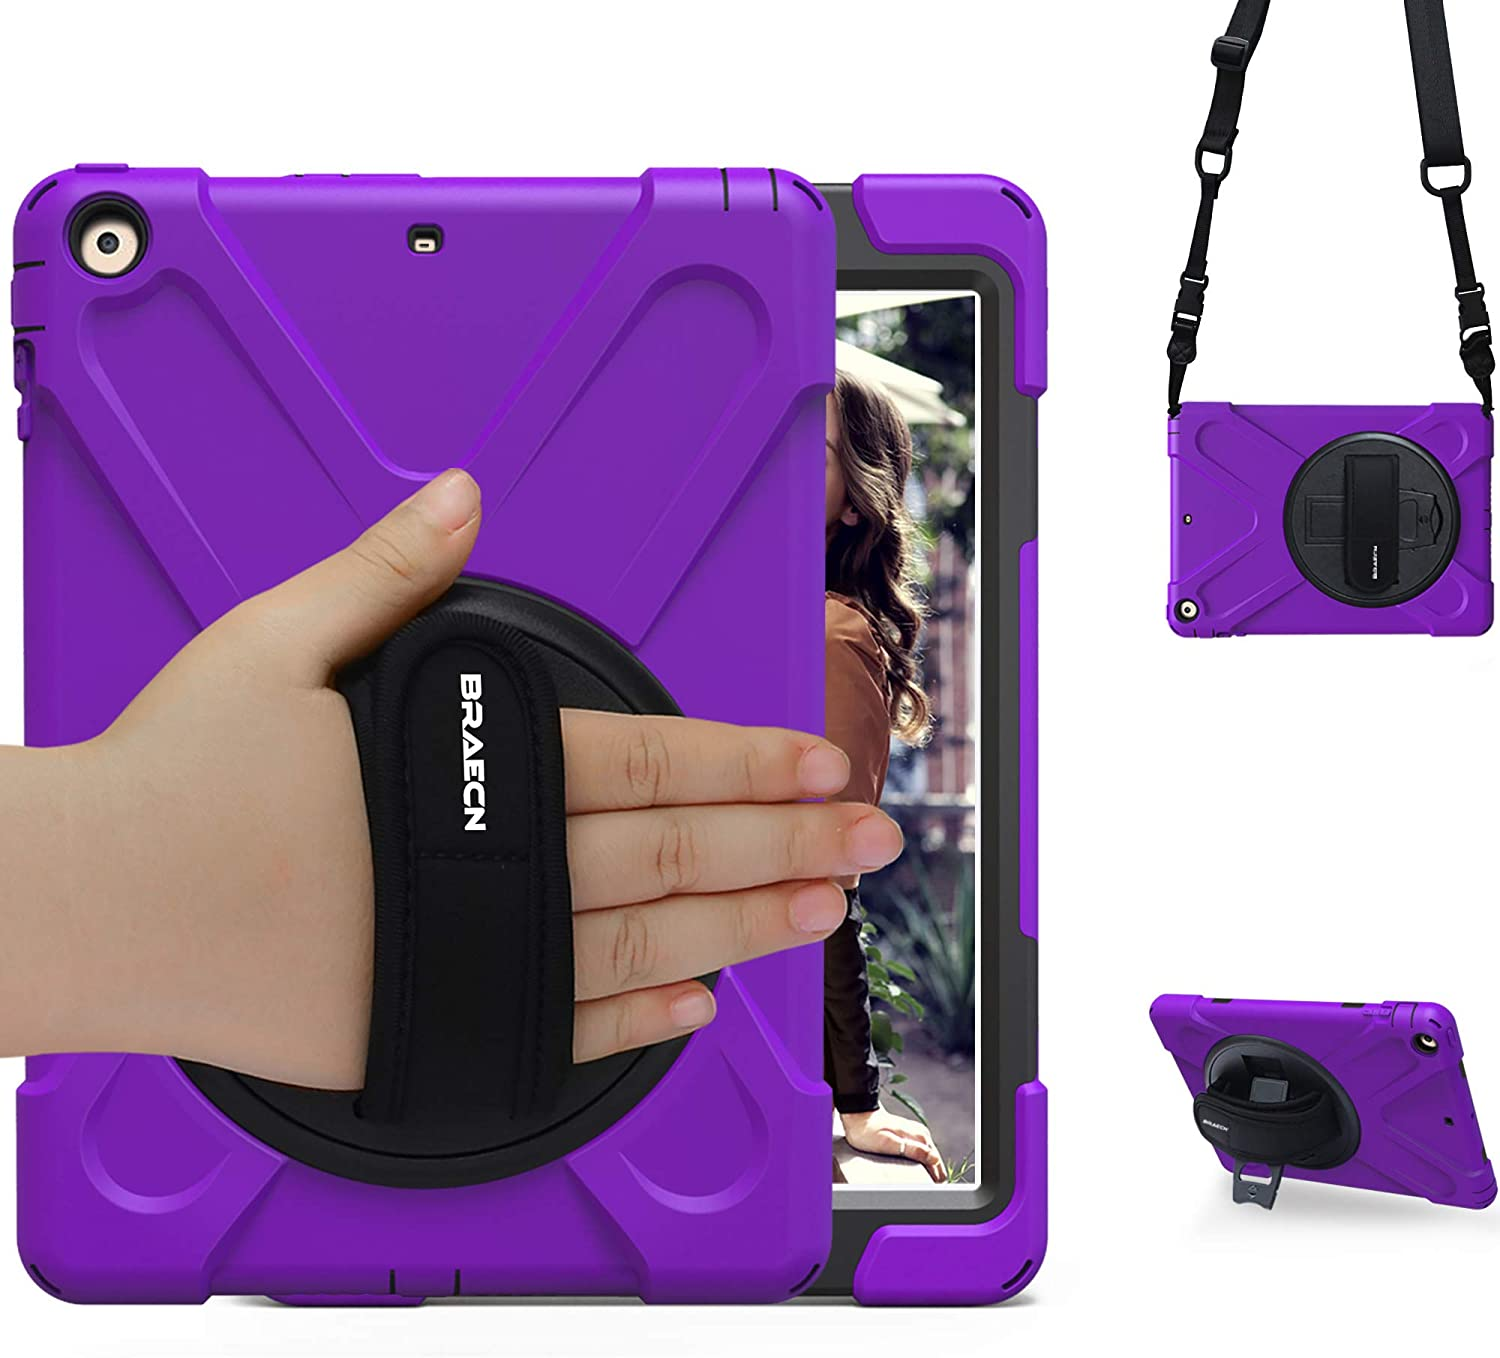 BRAECN iPad Air 1 Case [Hybrid Shockproof Case] Rugged Triple-Layer Shock-Resistant Drop Proof Defender Case Cover with Kickstand/Hand Strap/Adjustable Shoulder Strap for iPad Air 9.7 Cover(Purple)